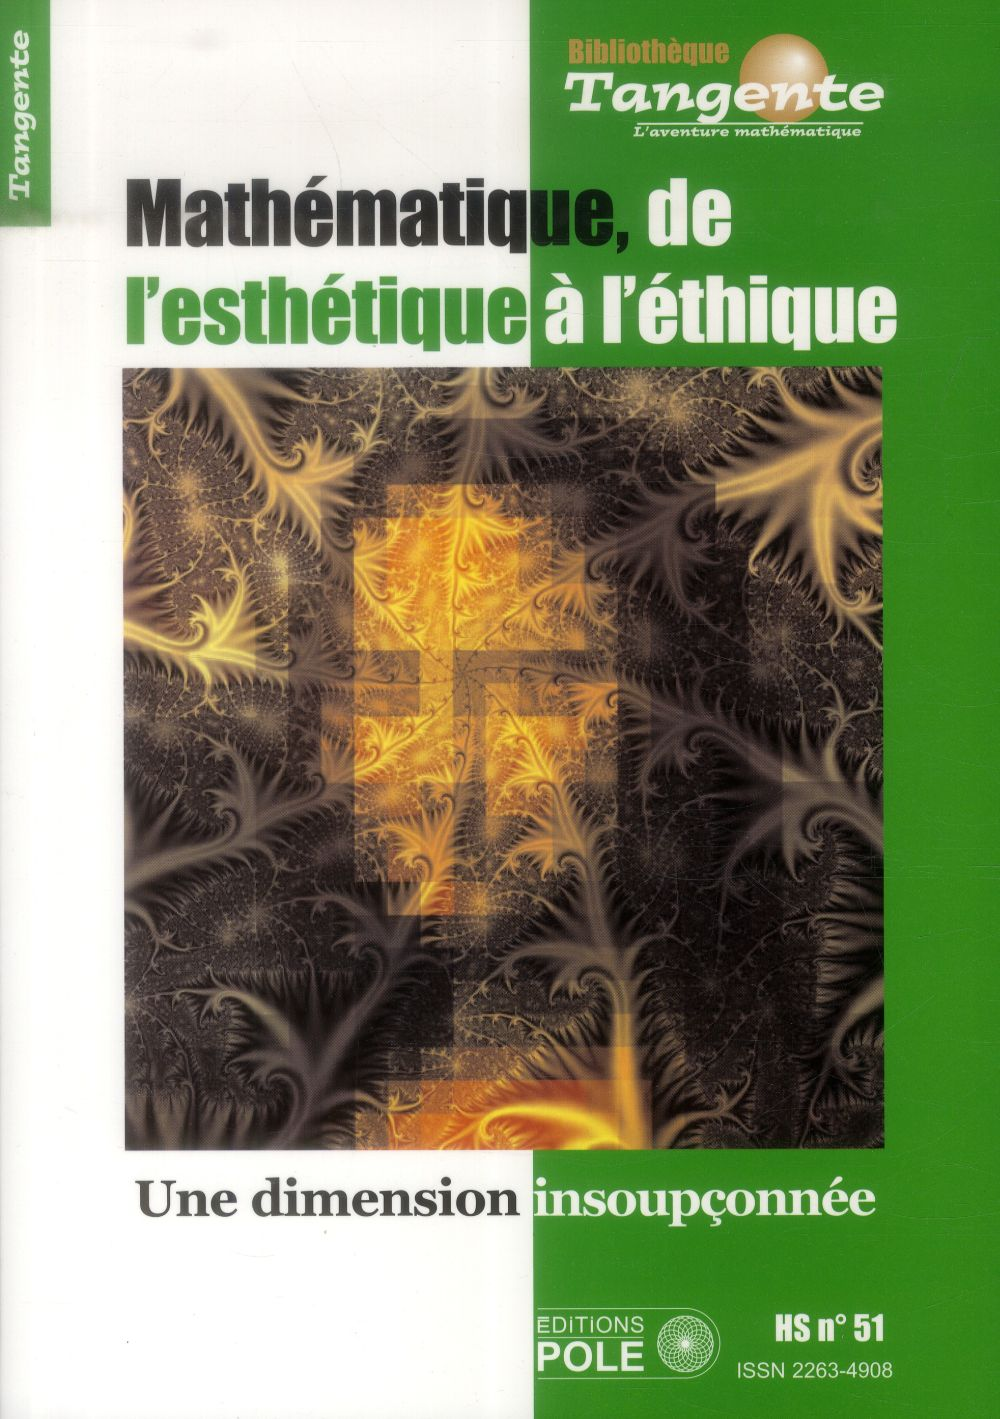 Esthetique mathematique ; une dimension insoupconnee